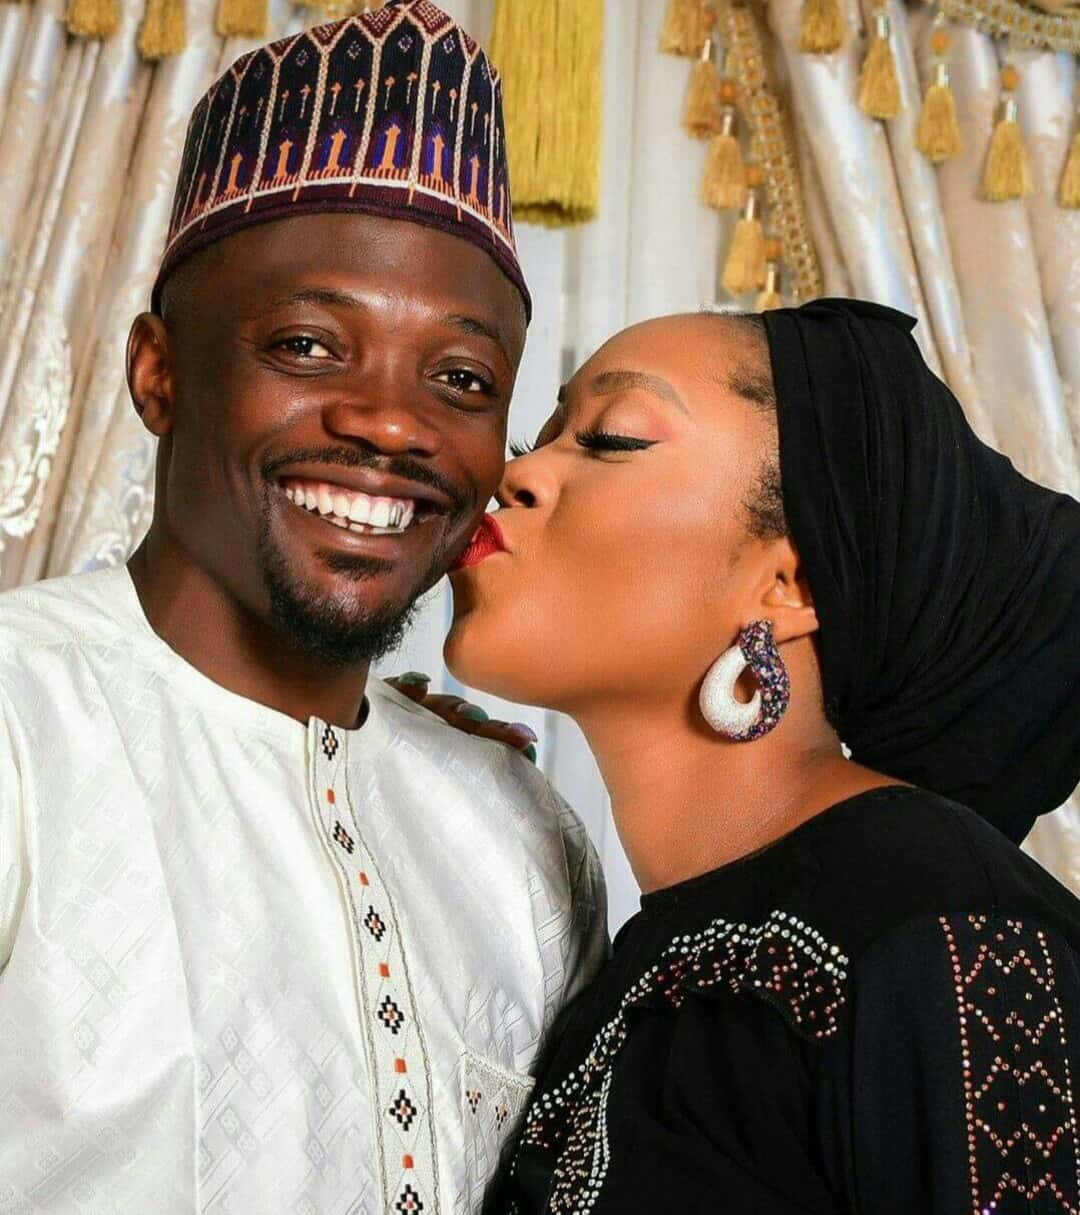 Muslims rebuke Ahmed Musa for posting a photo of his wife kissing his cheek